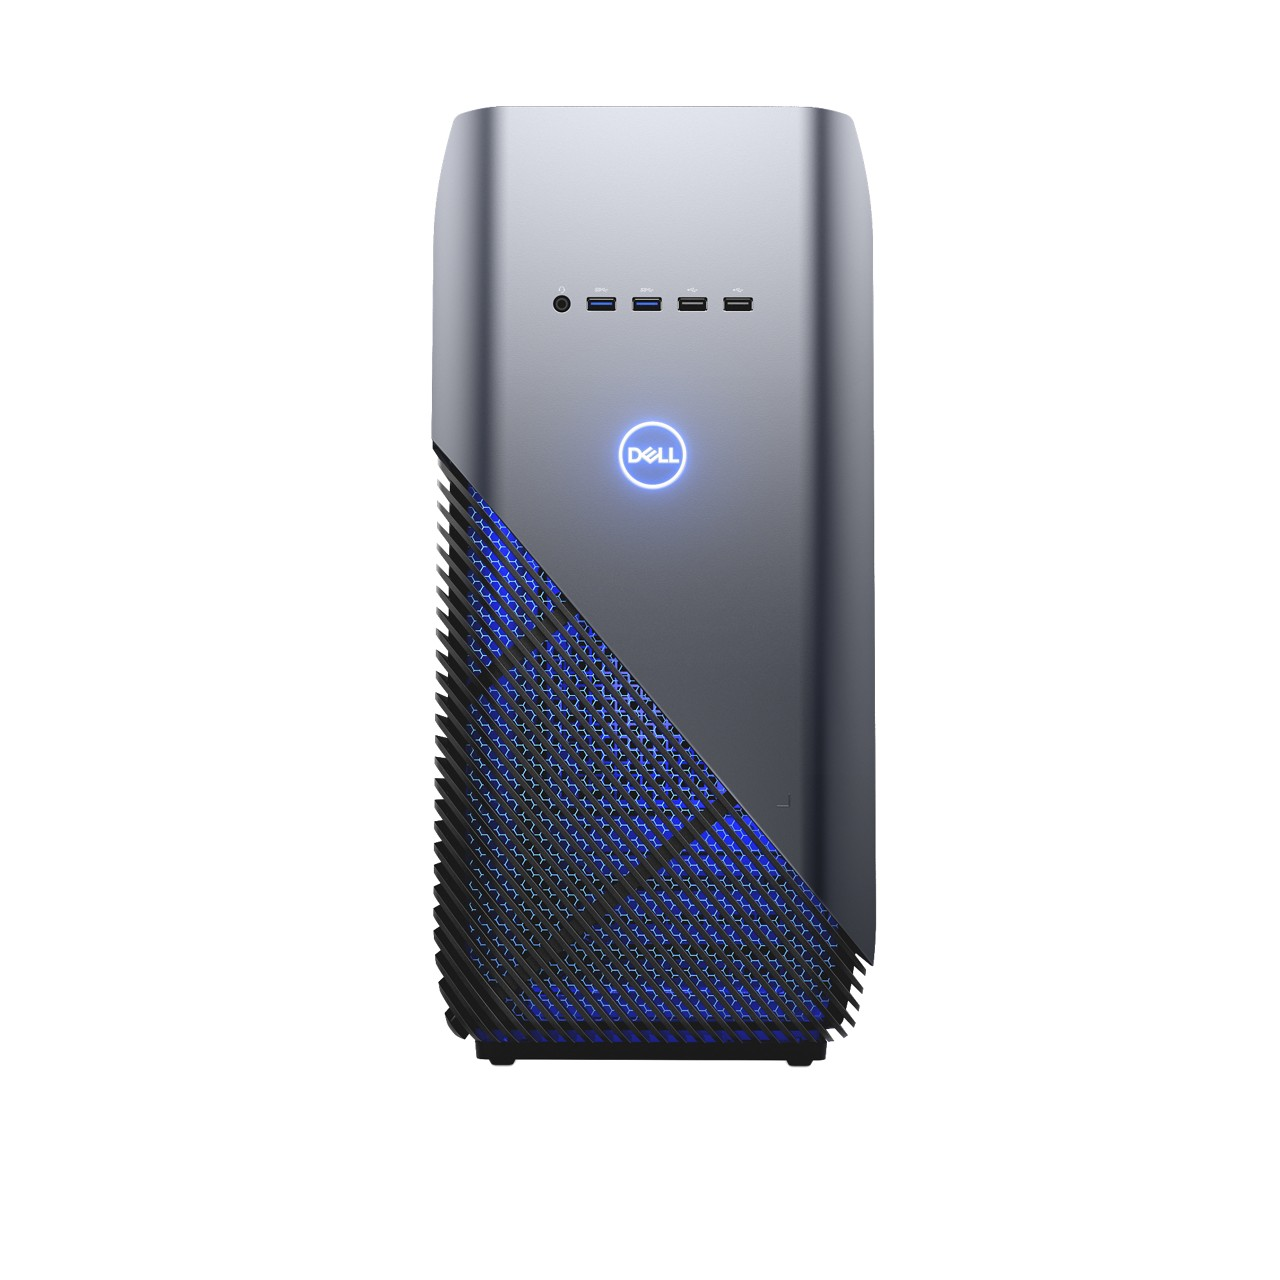 Awesome Dell Inspiron 5680 Gaming Desktop Intel I7 8700 Nvidia Gtx 1060 128Gb Ssd 2Tb Hdd 16Gb Ram Download Free Architecture Designs Itiscsunscenecom